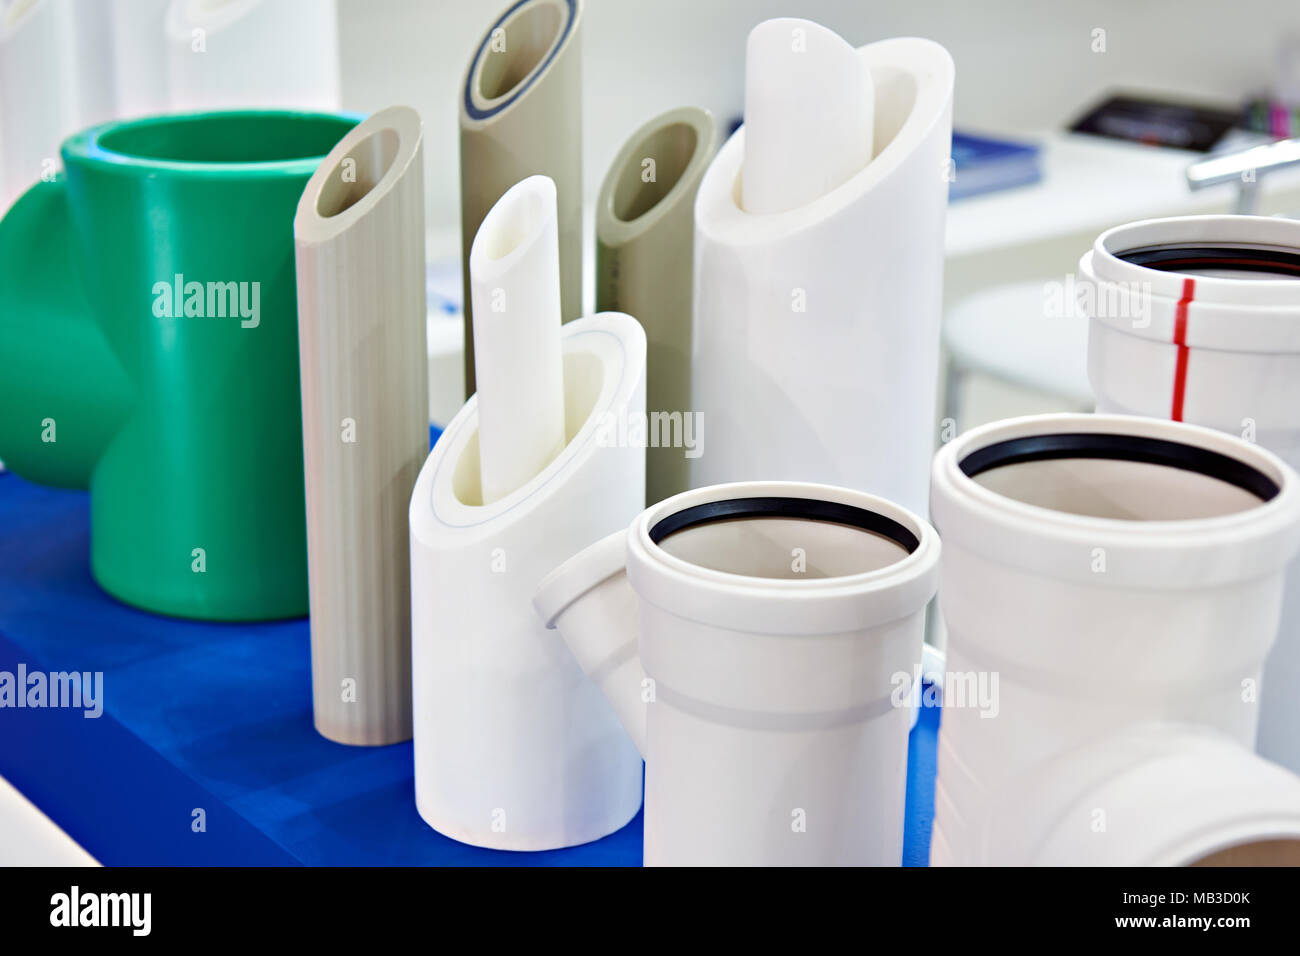 plastic water pipes stockfotos plastic water pipes bilder alamy. Black Bedroom Furniture Sets. Home Design Ideas